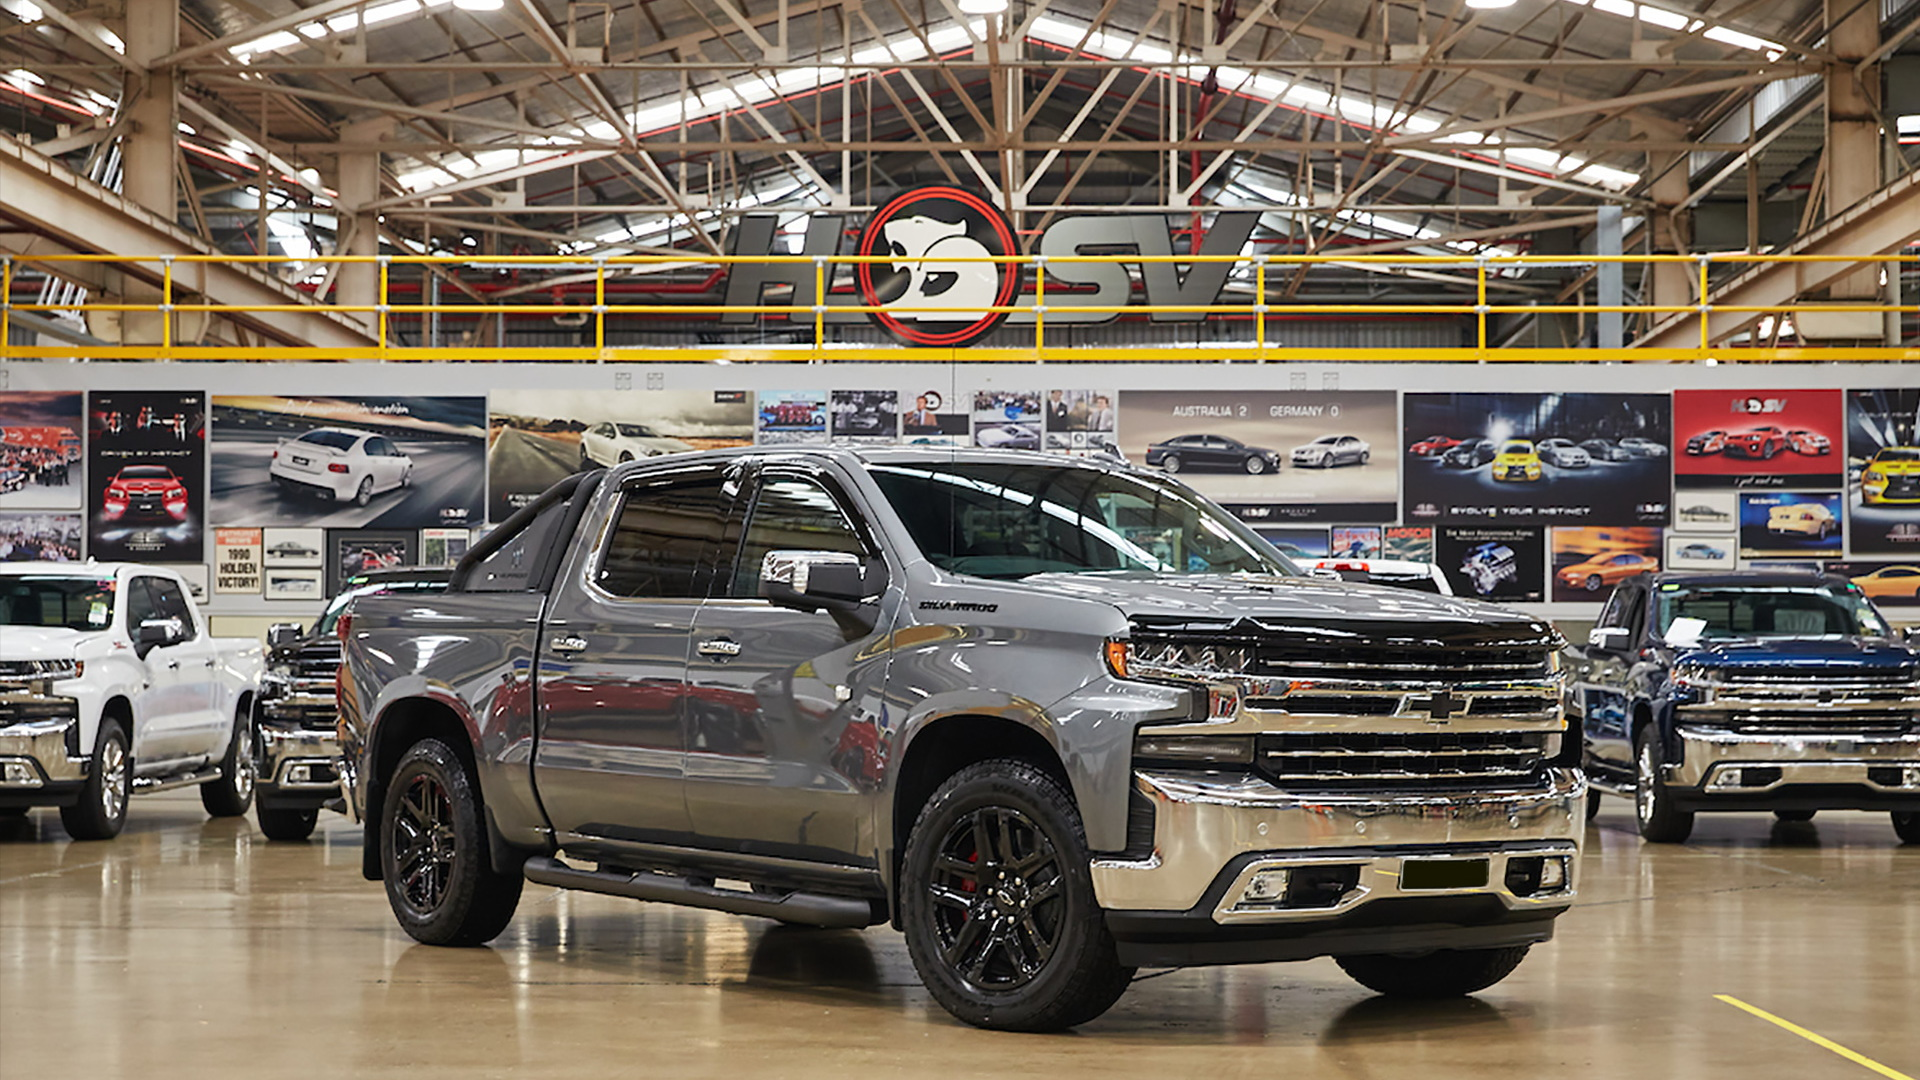 2020 Chevrolet Silverado 1500 with right-hand-drive conversion